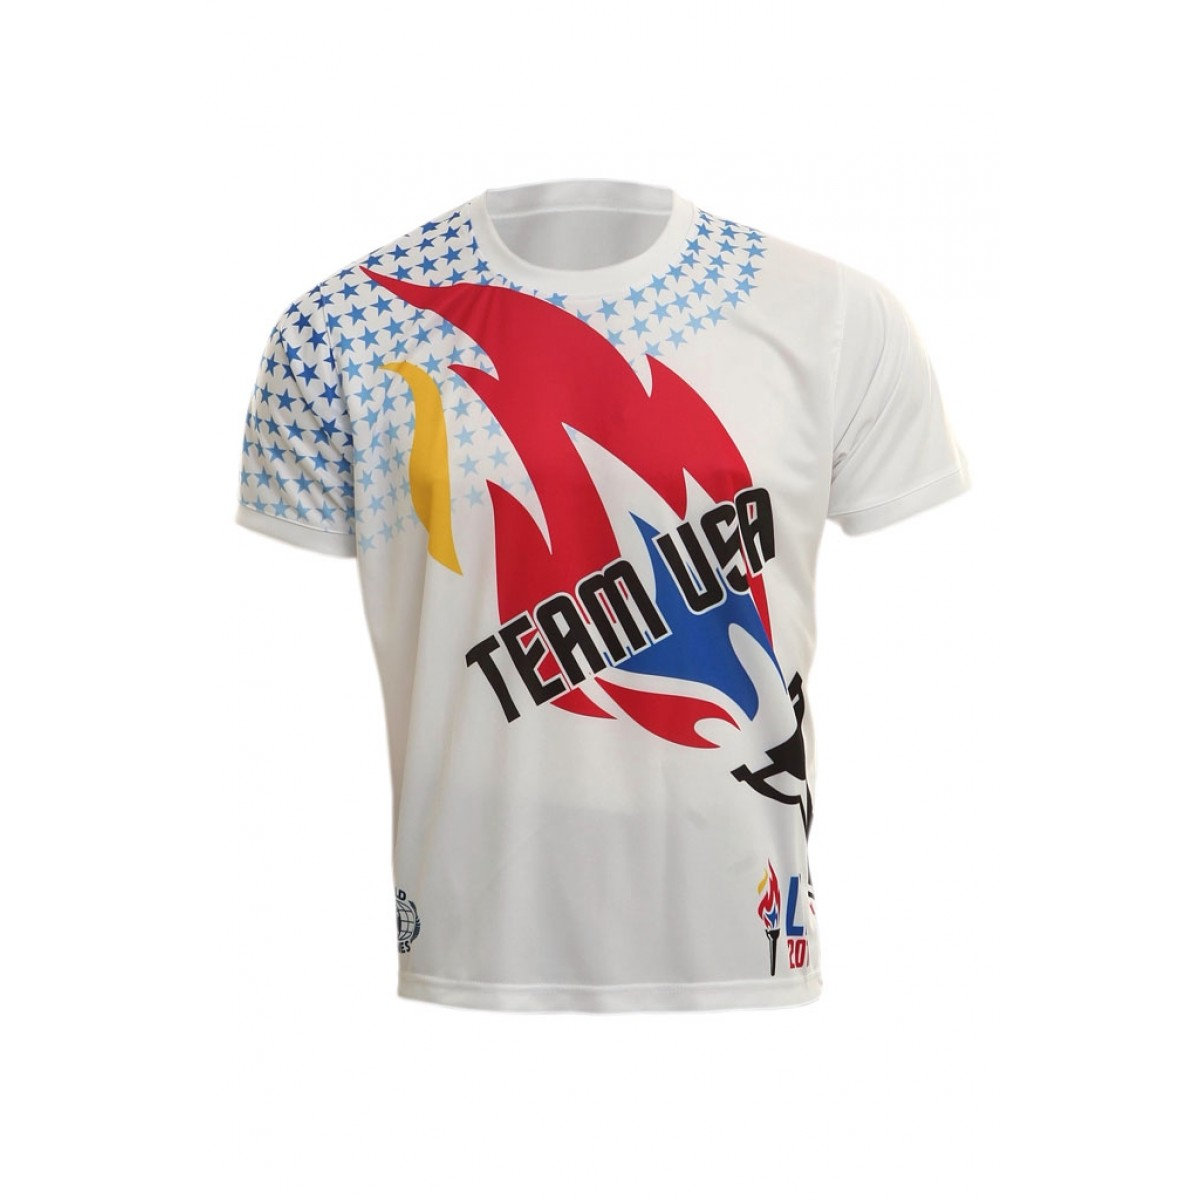 TEAM USA Sublimated T-shirt